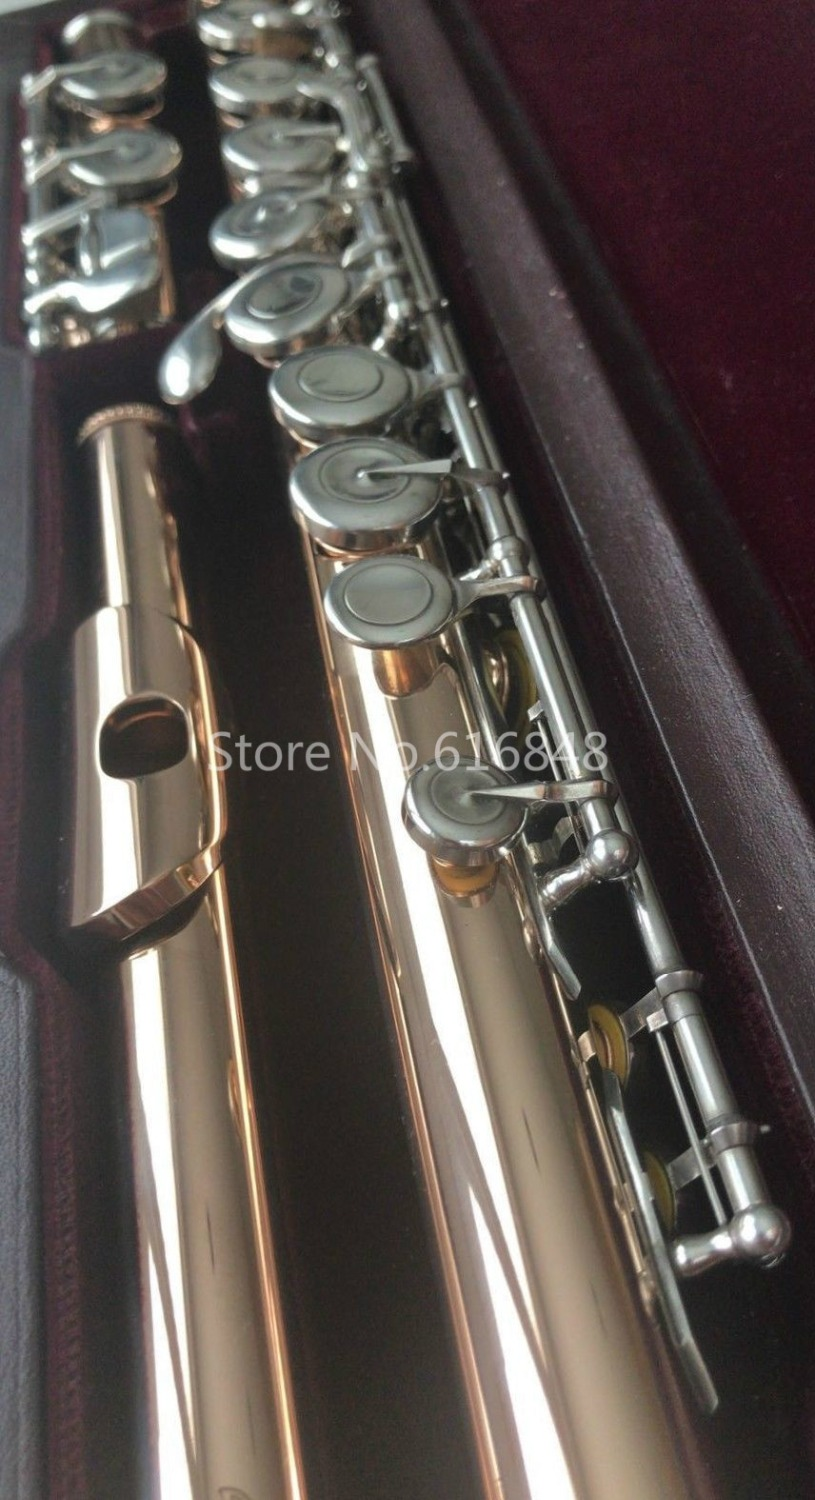 Gold Lacquer High Quality Muramatsu Flute 16 Keys Closed Holes Brand New Arrival Musical Instrument Flute With Case